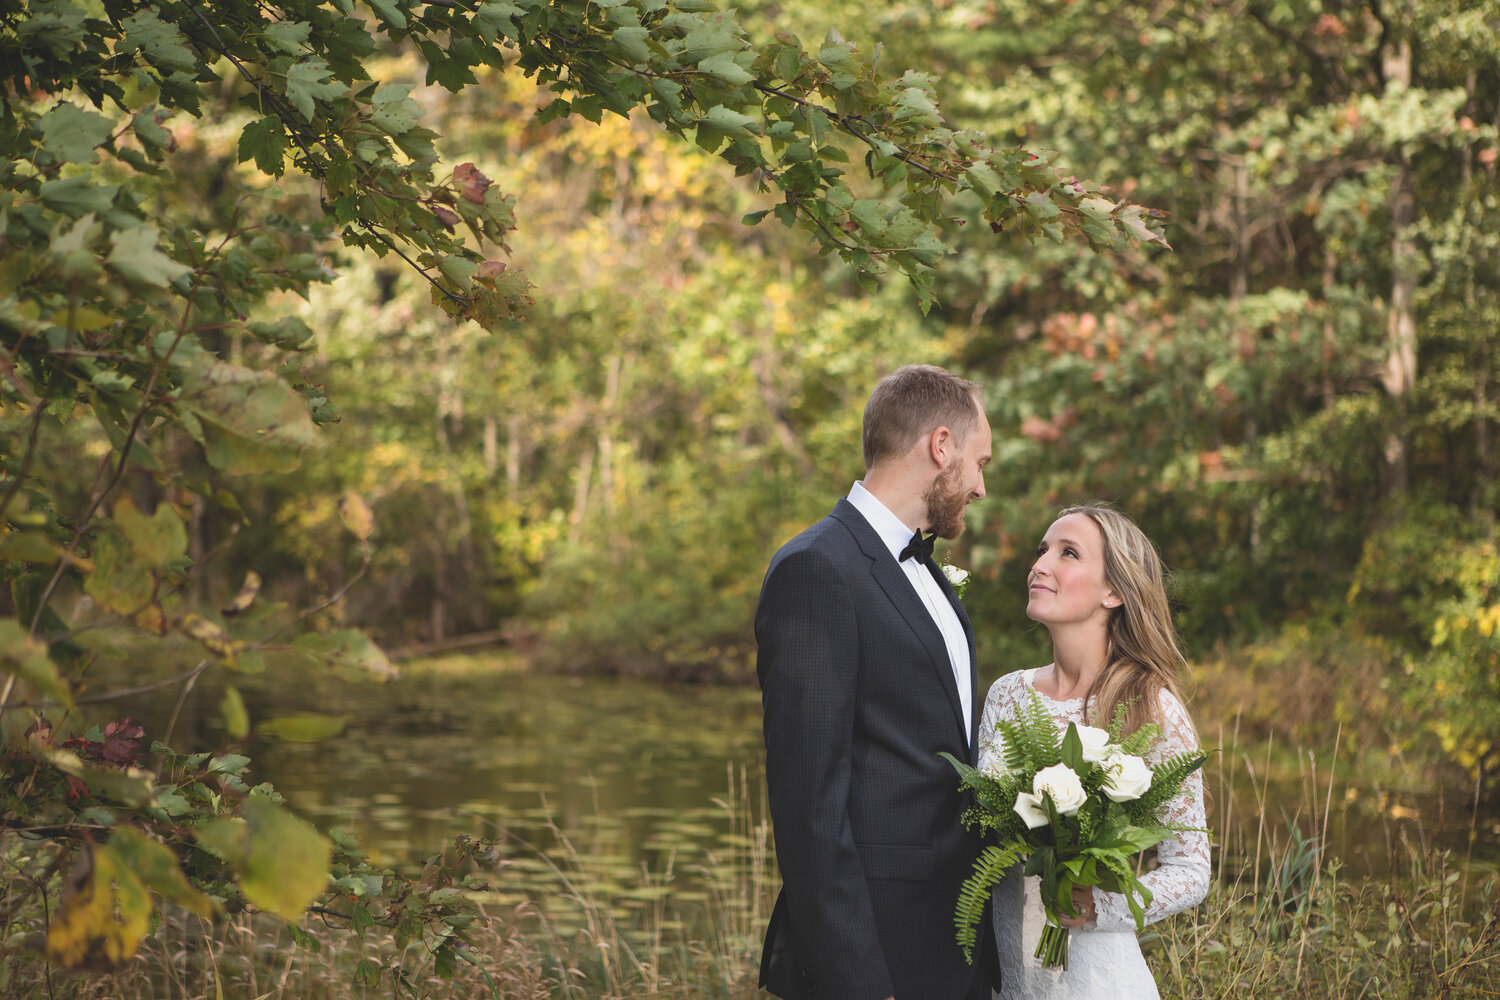 Sam and Kyle - Wedding Photography Services by Devon Crowell